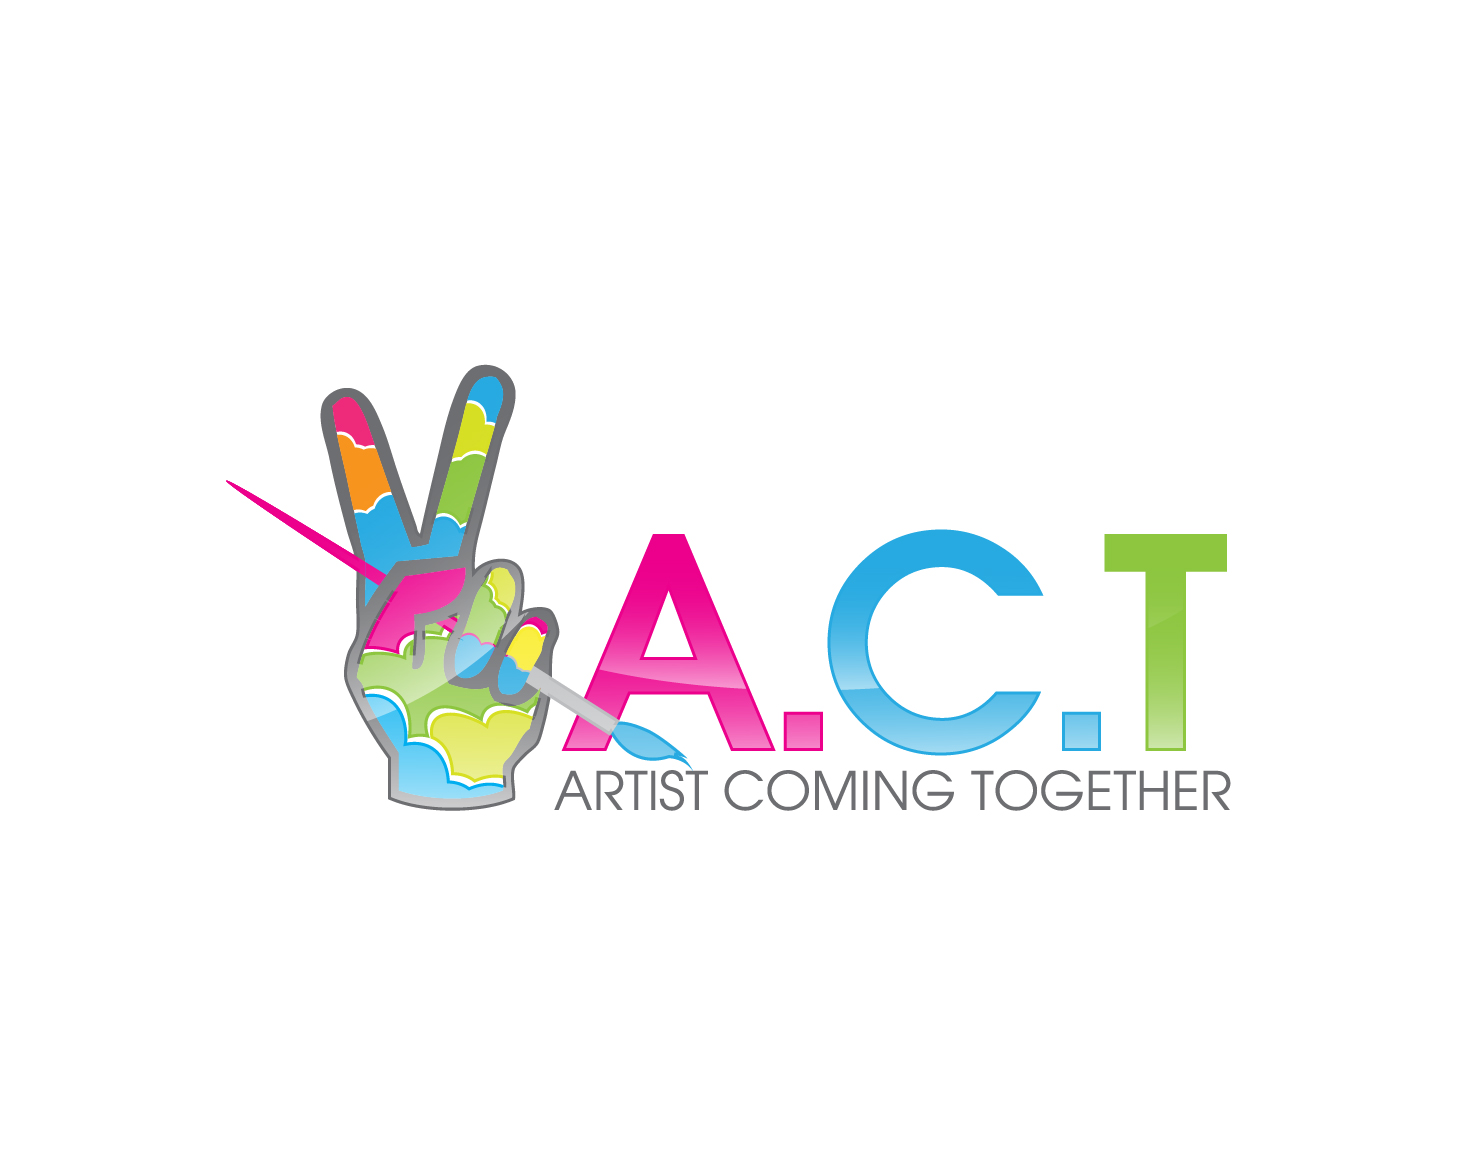 Logo Design by gabbyadingail - Entry No. 65 in the Logo Design Contest Creative Logo Design for A.C.T. Artists Coming Together.